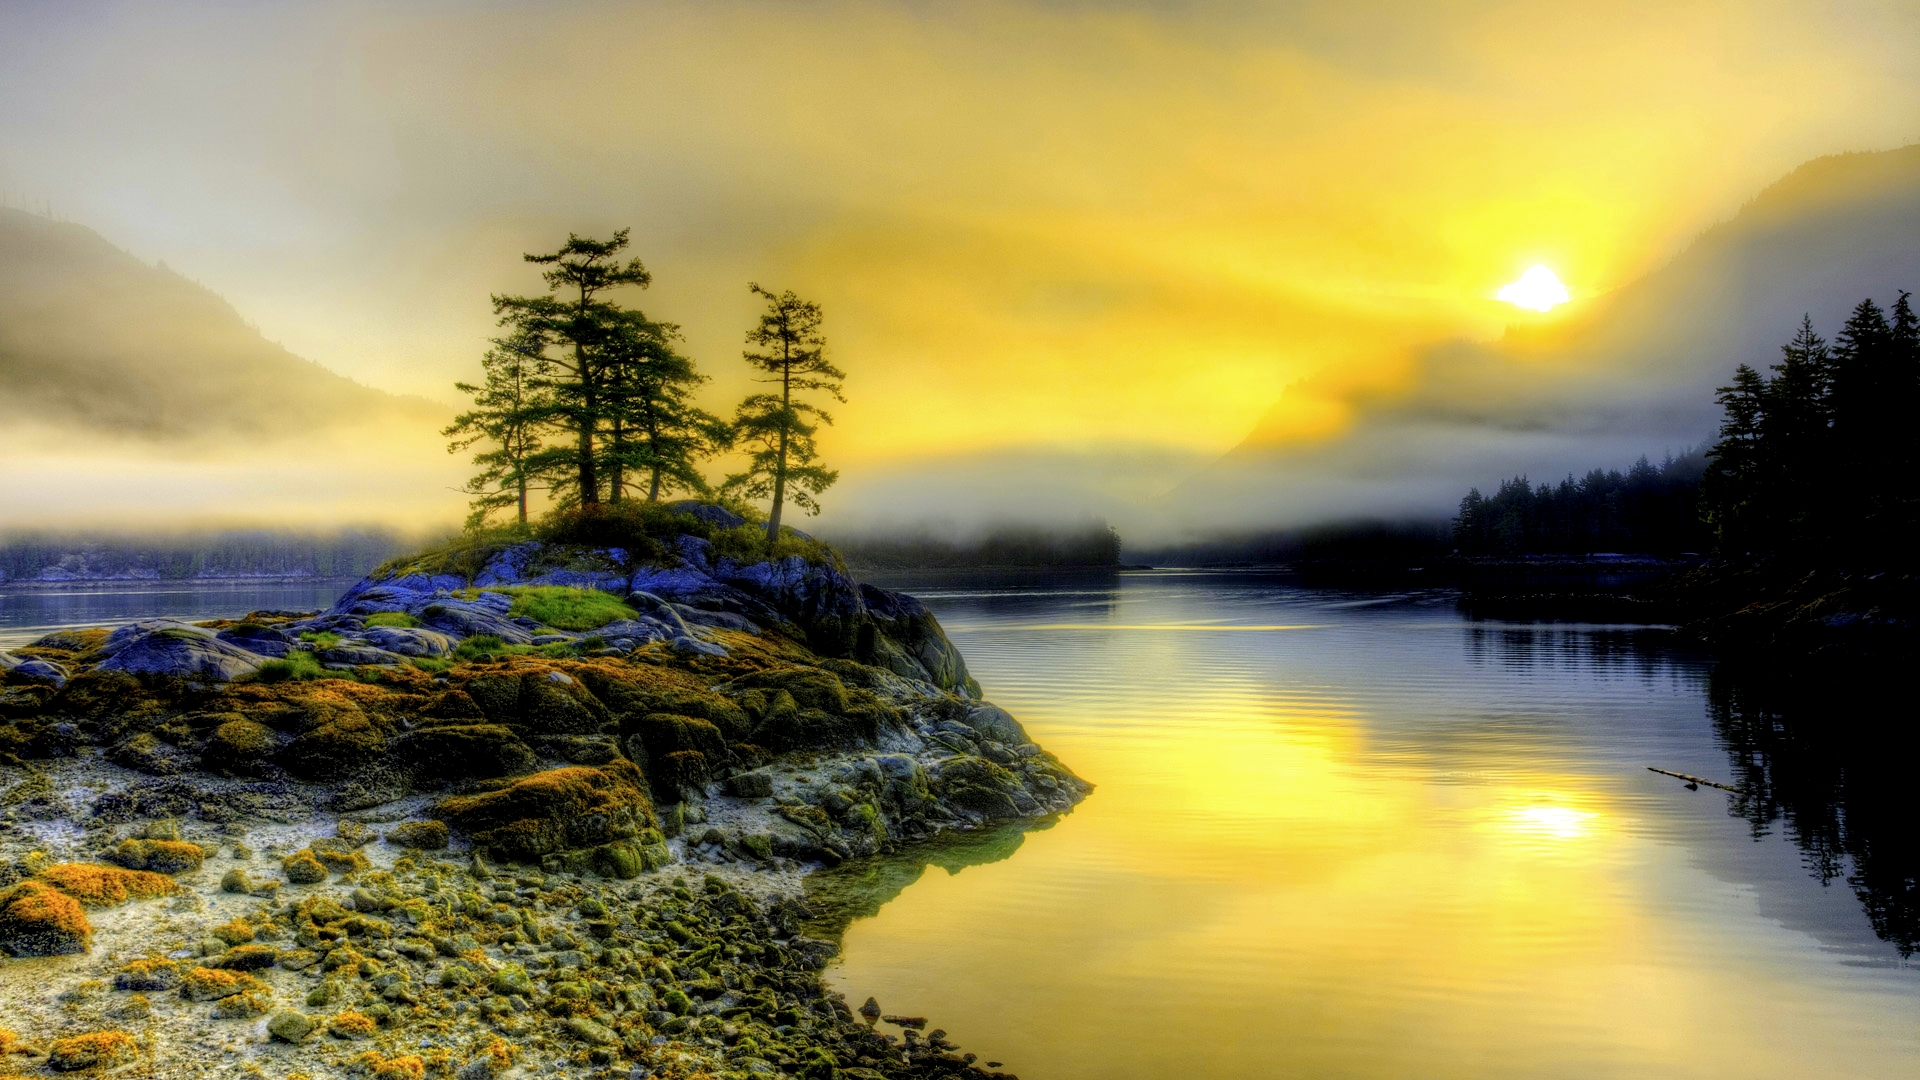 Misty Morning Wallpaper: Morning Wallpaper Beautiful Misty Wallpapers Hd Free 1920x1080px